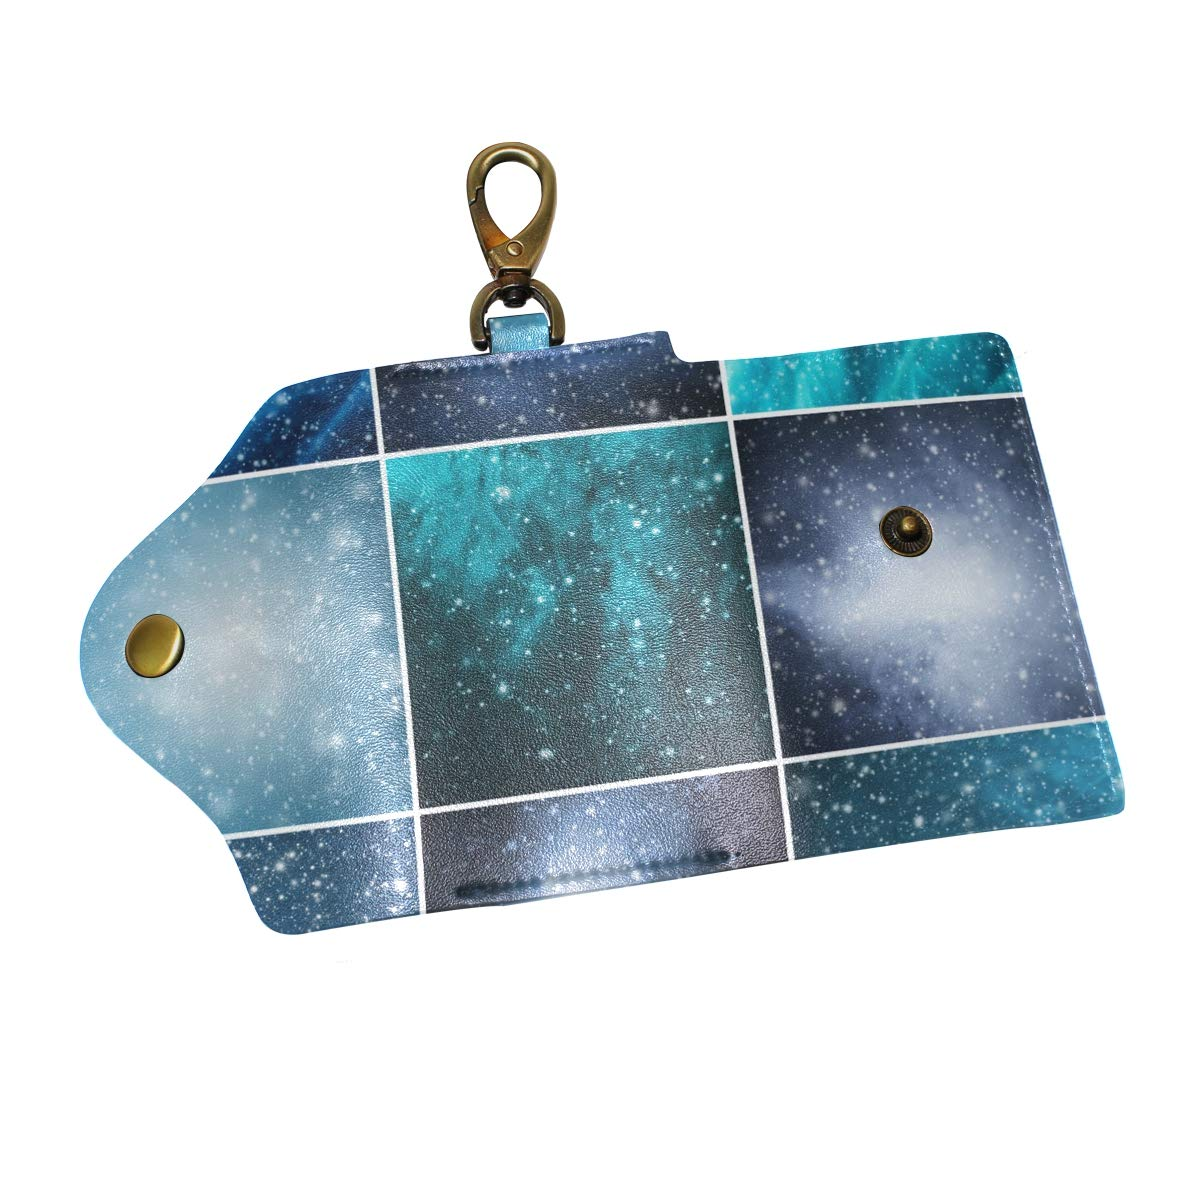 KEAKIA Snow Flakes And Stars Leather Key Case Wallets Tri-fold Key Holder Keychains with 6 Hooks 2 Slot Snap Closure for Men Women